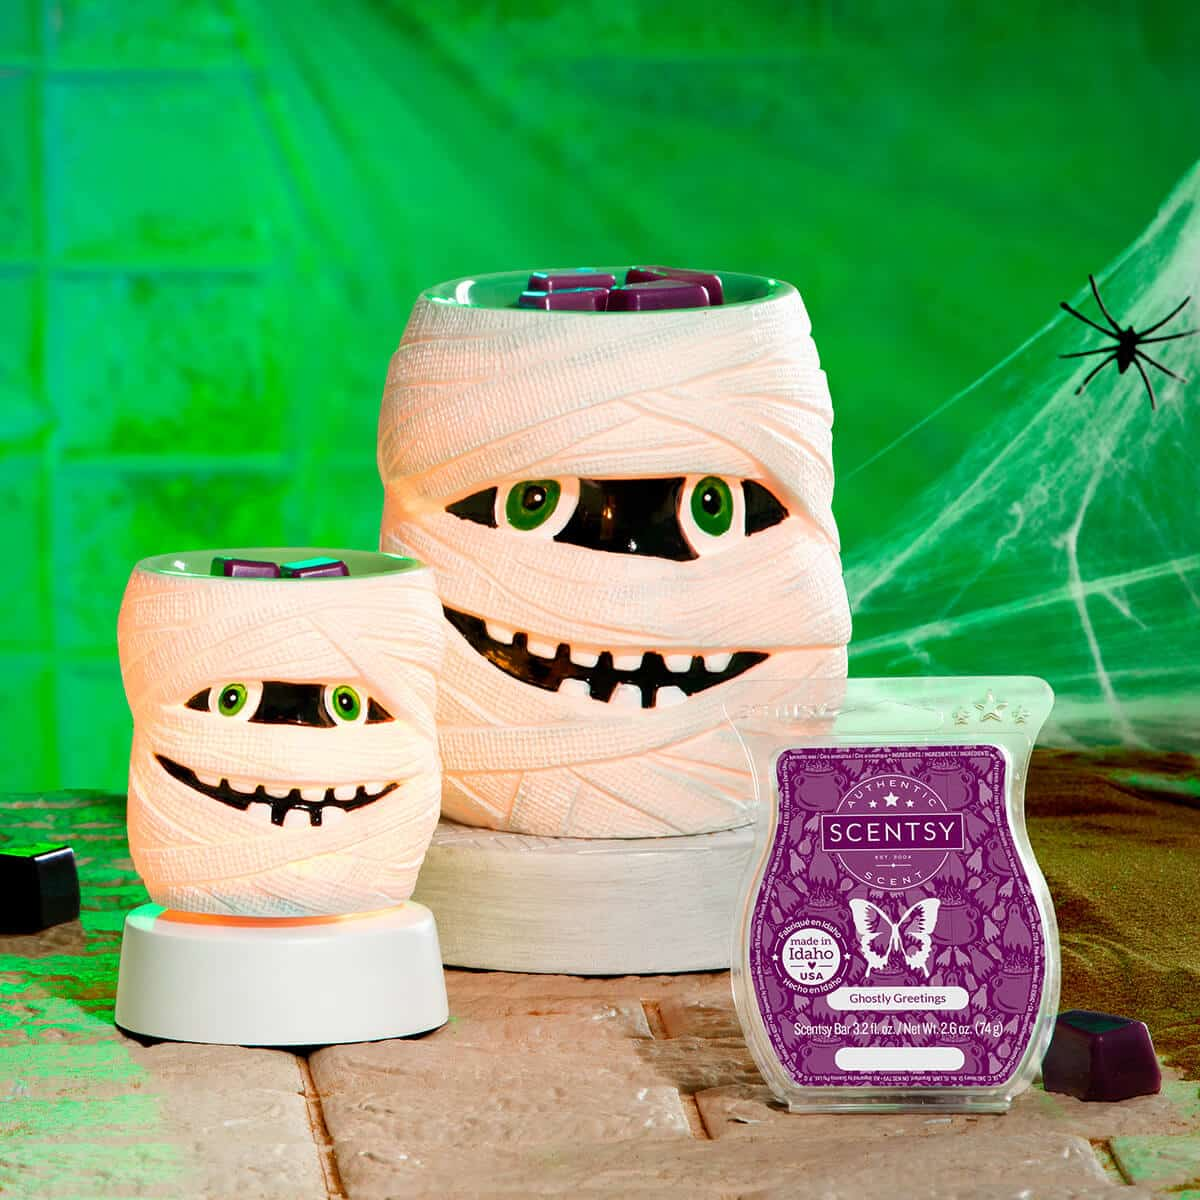 SCENTSY SEPTEMBER 2020 WARMER & SCENT OF THE MONTH – UNDER WRAPS MUMMY SCENTSY WARMERS & GHOSTLY GREETINGS